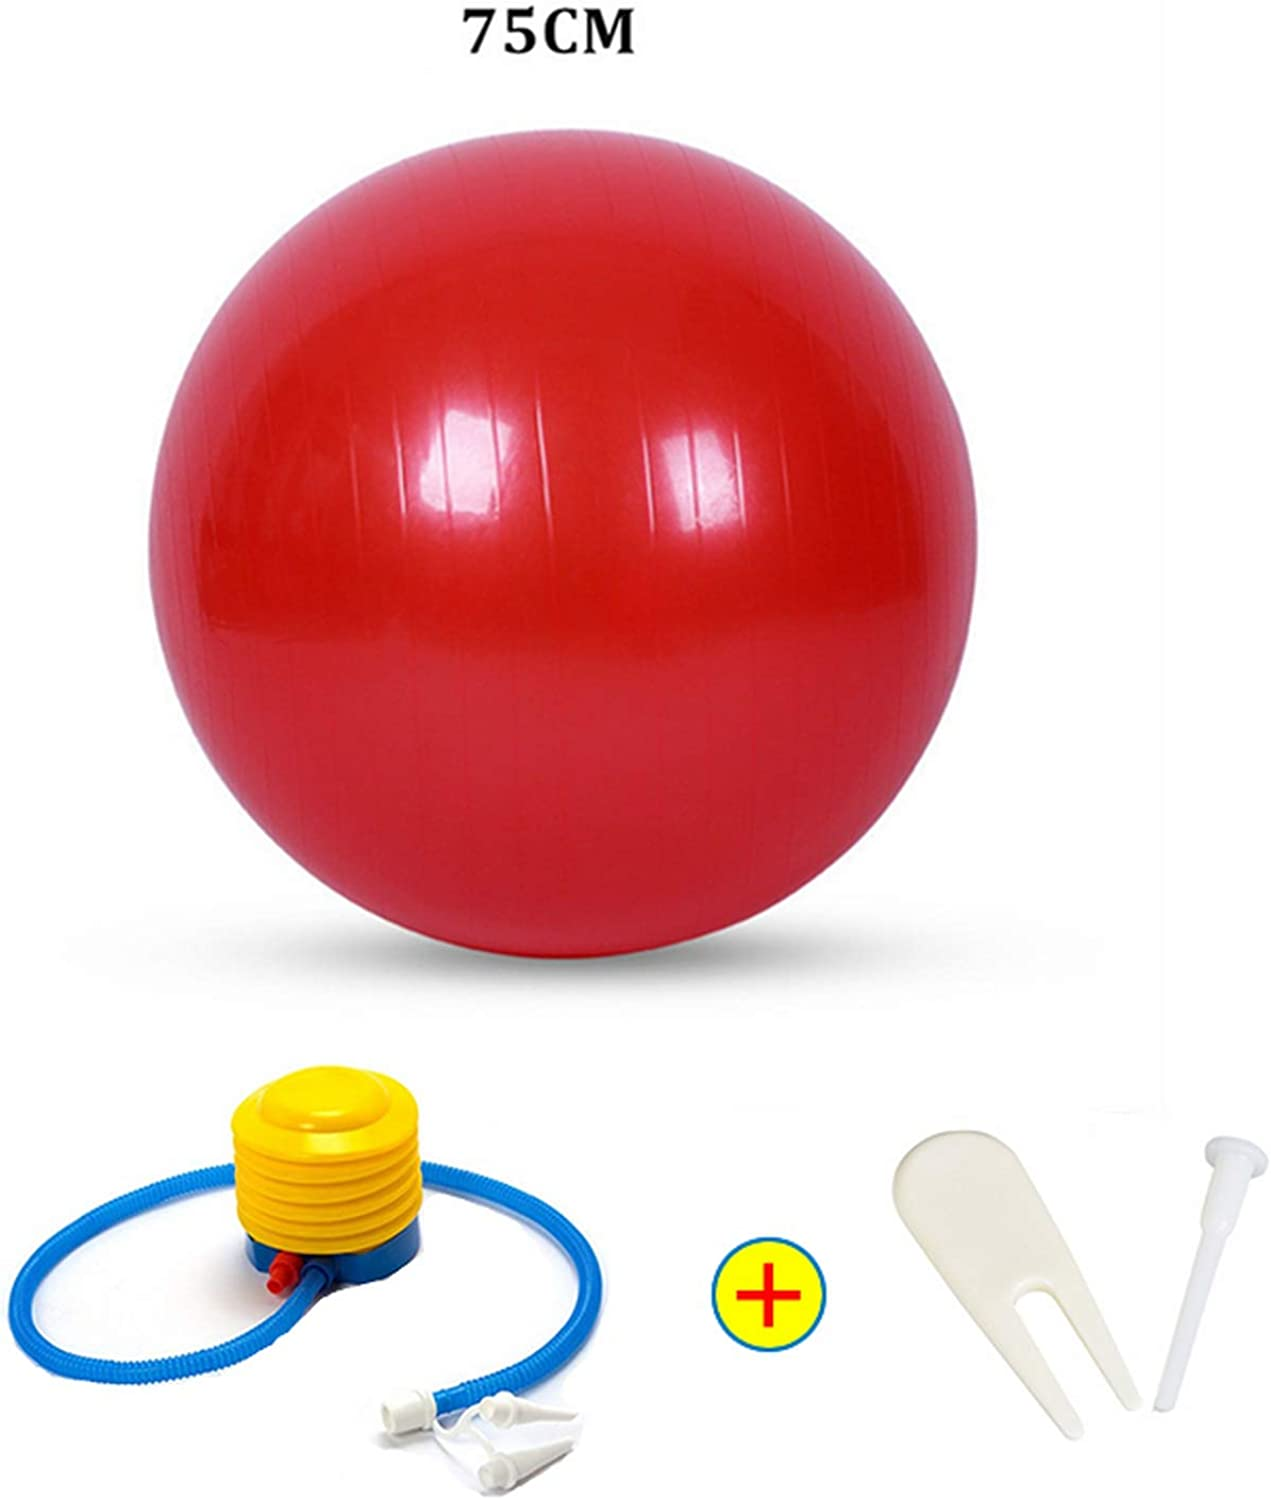 Sports Yoga Balls Bola Pilates Fitness Ball Gym Balance Fitball Exercise Pilates Workout Massage Ball with Pump 55Cm 65Cm 75Cm,75Cm Red